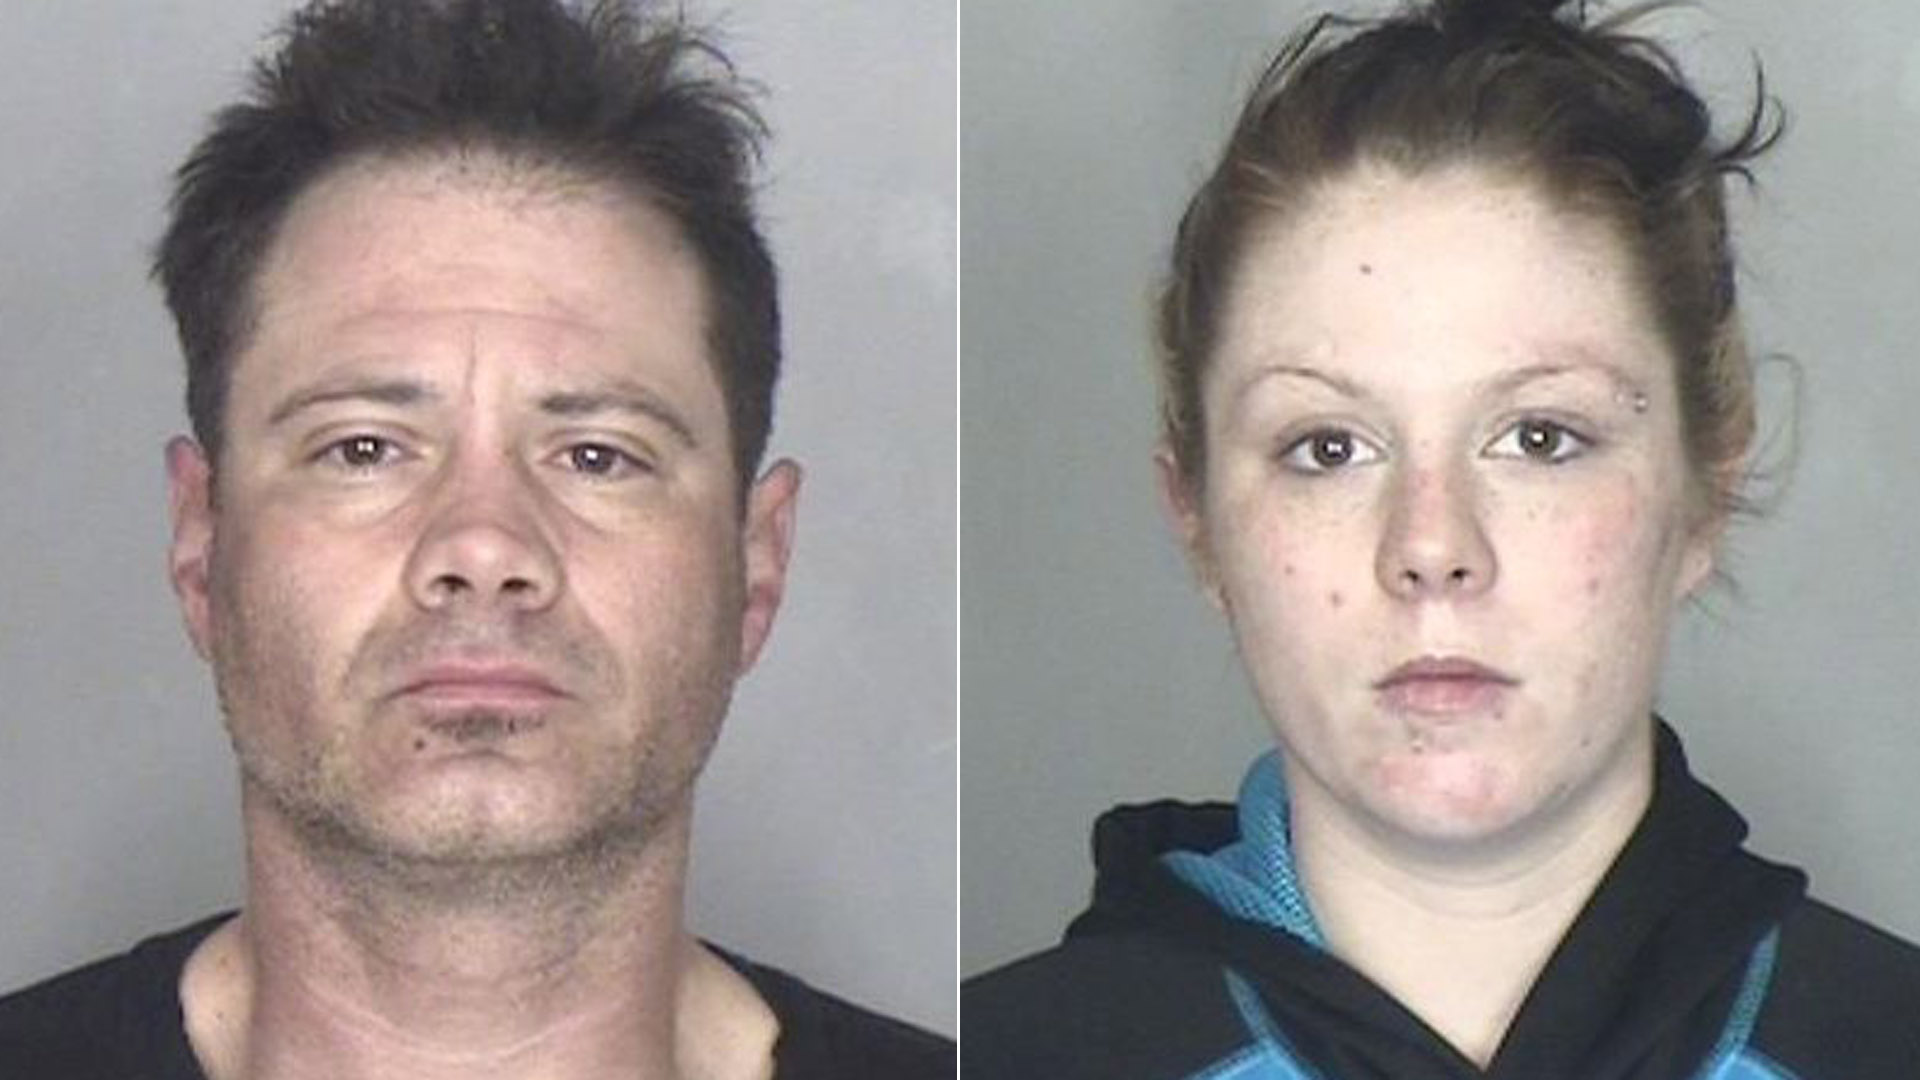 Jeremy Blumlein and Breanna Maier are seen in booking photos released by the Butte County Sheriff's Office on Dec. 24, 2019.